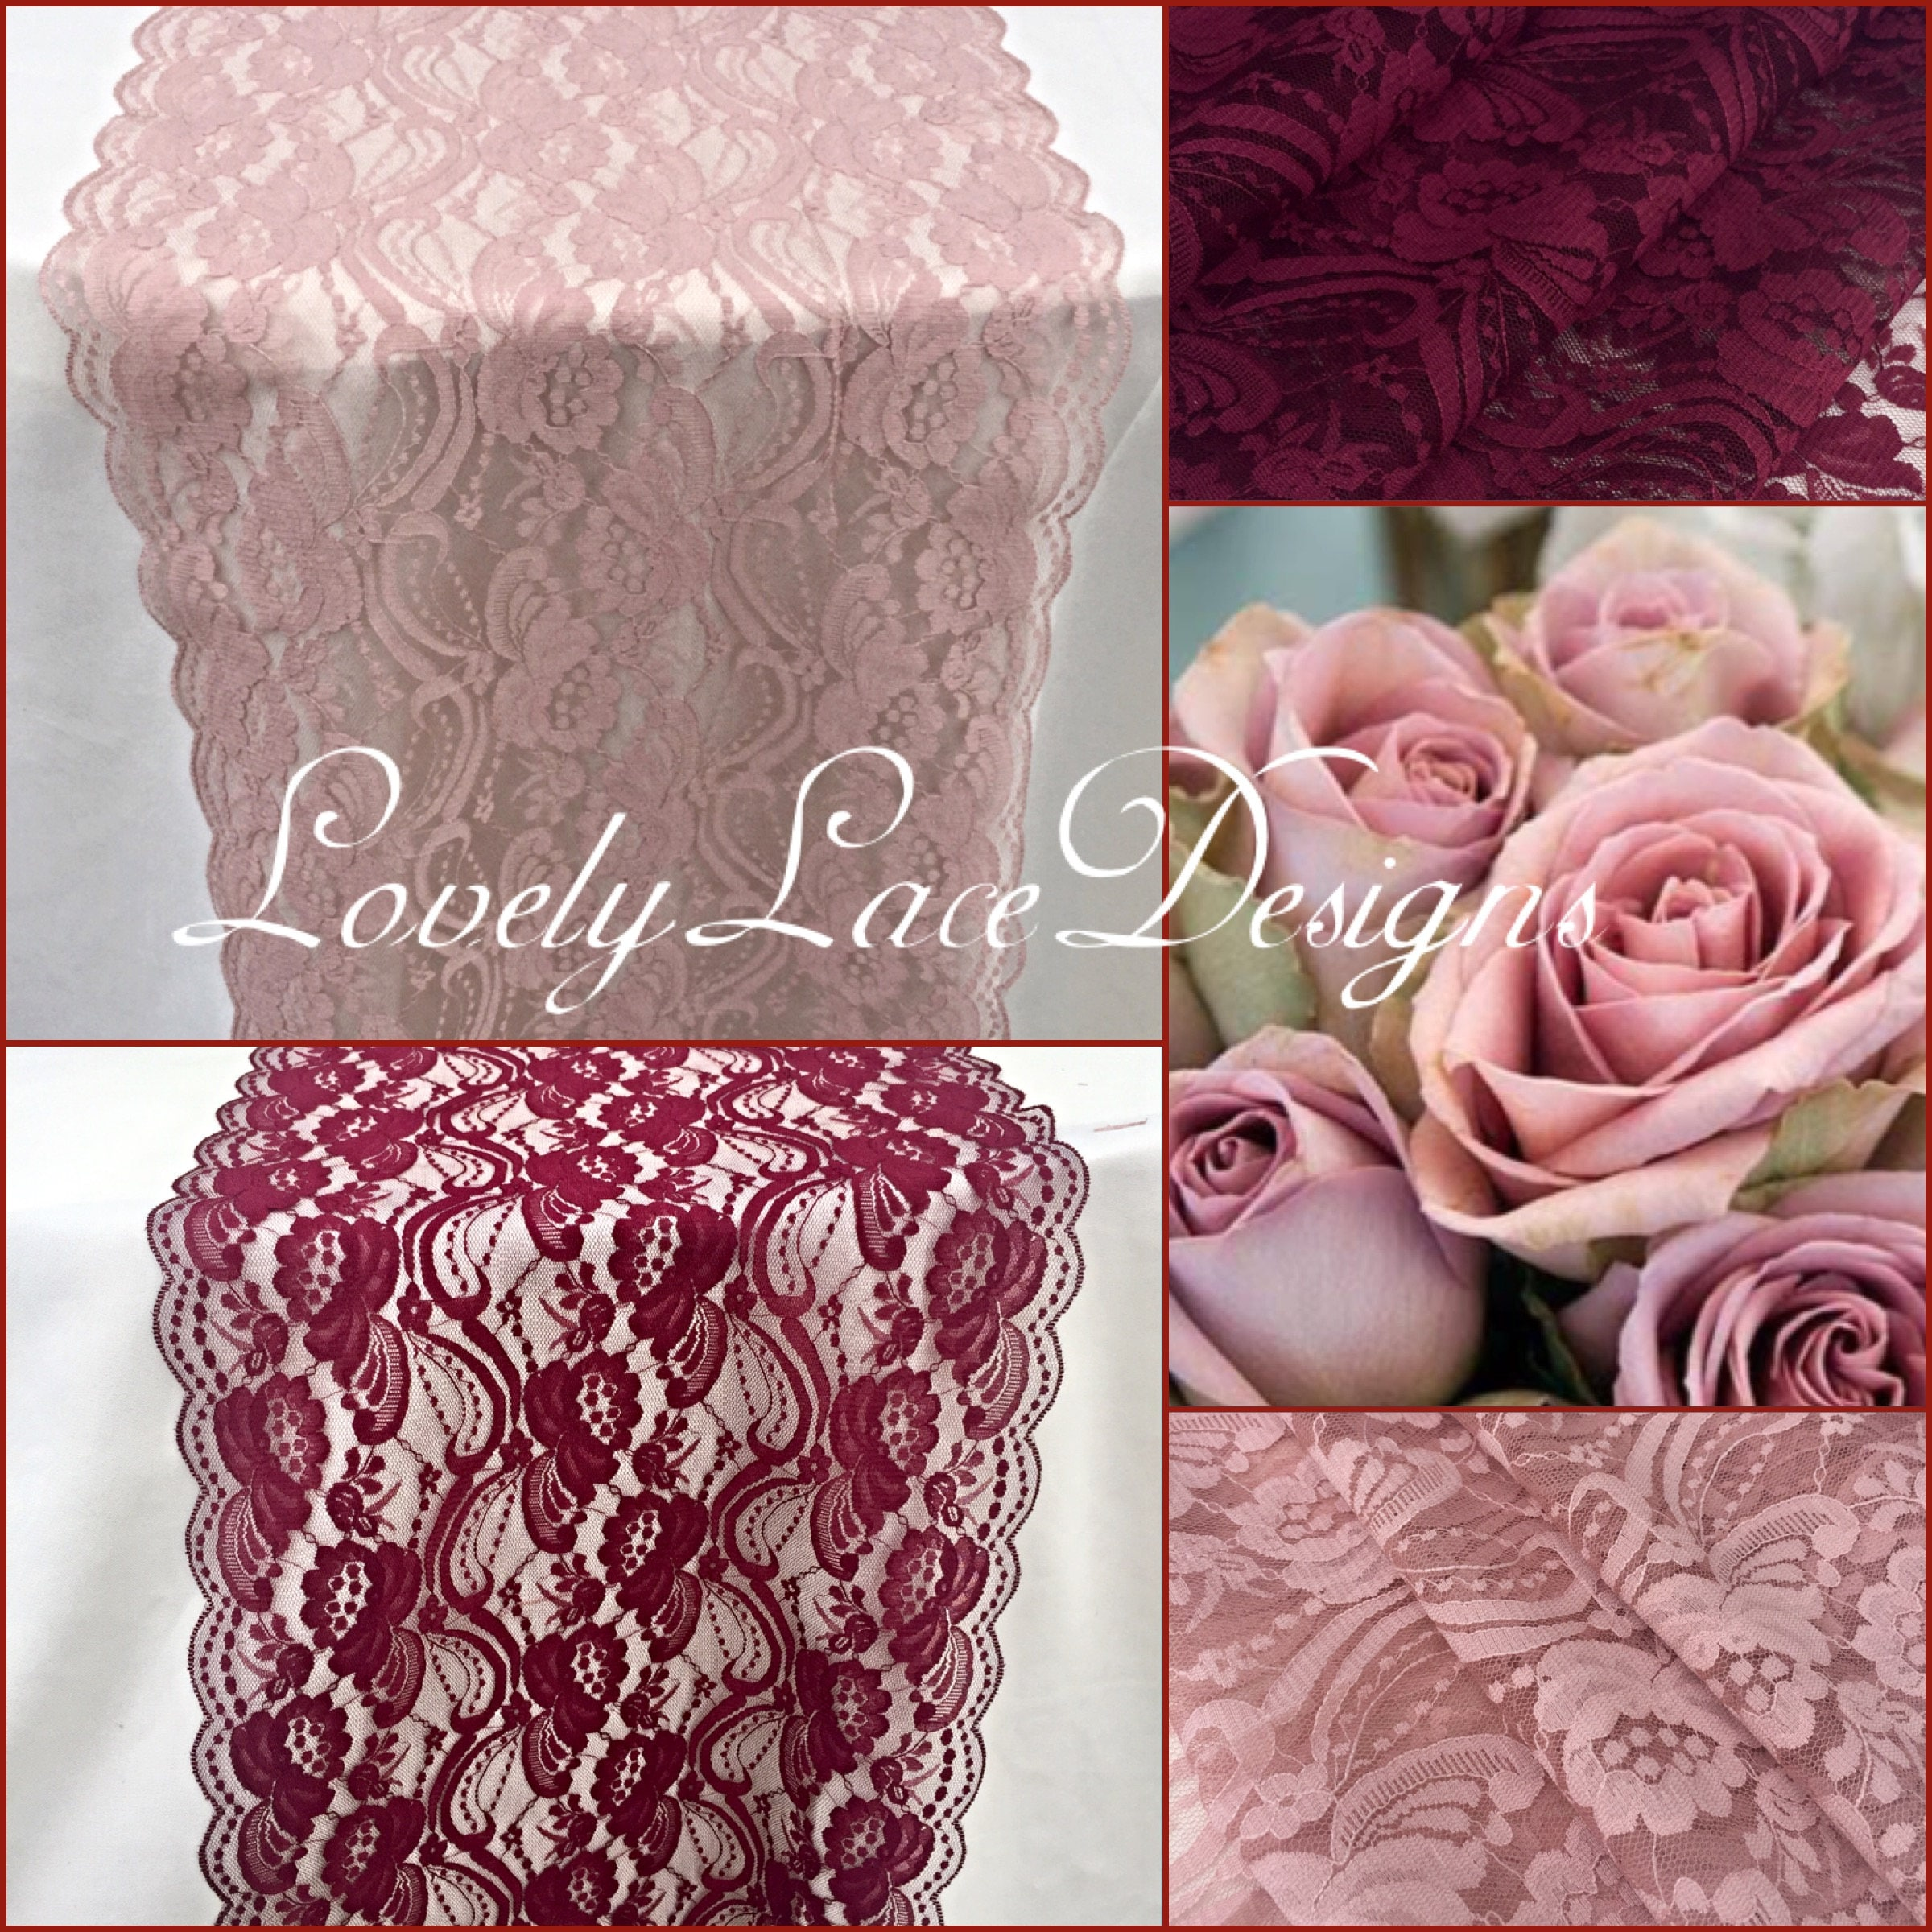 Excellent Burgundy/Dusty Rose / Lace Table Runner/3ft-10ft long x 12 Wide  GM65